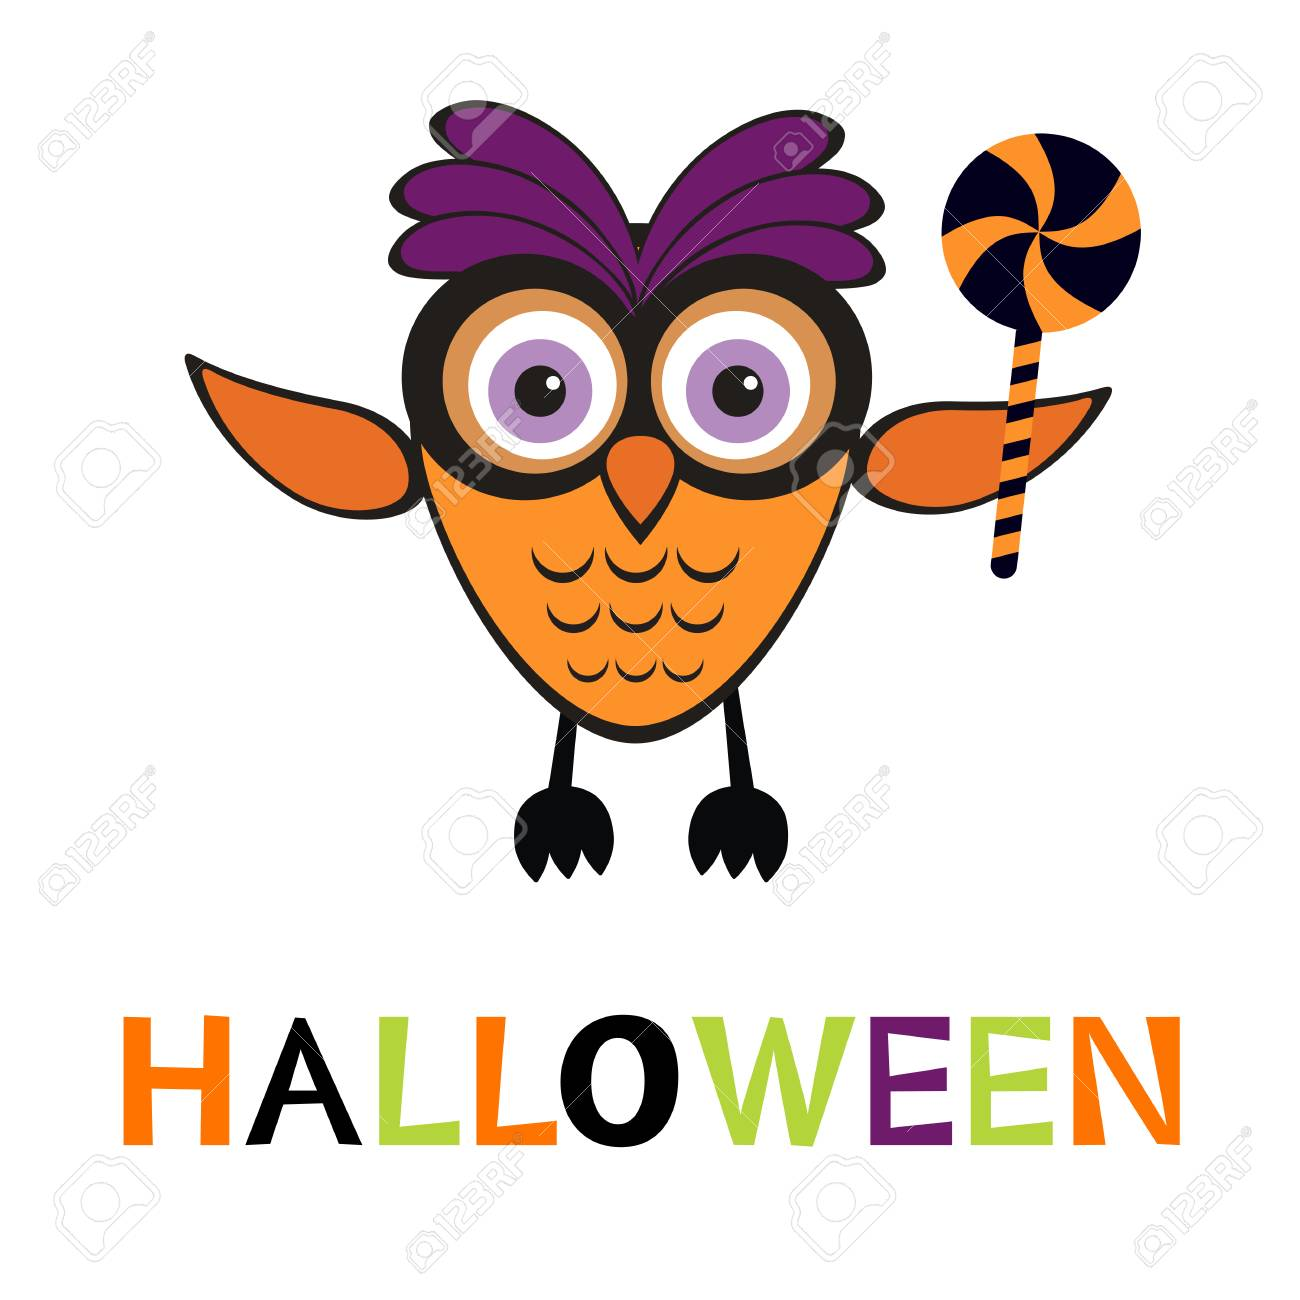 an illustration of cute halloween owl in vector format royalty free